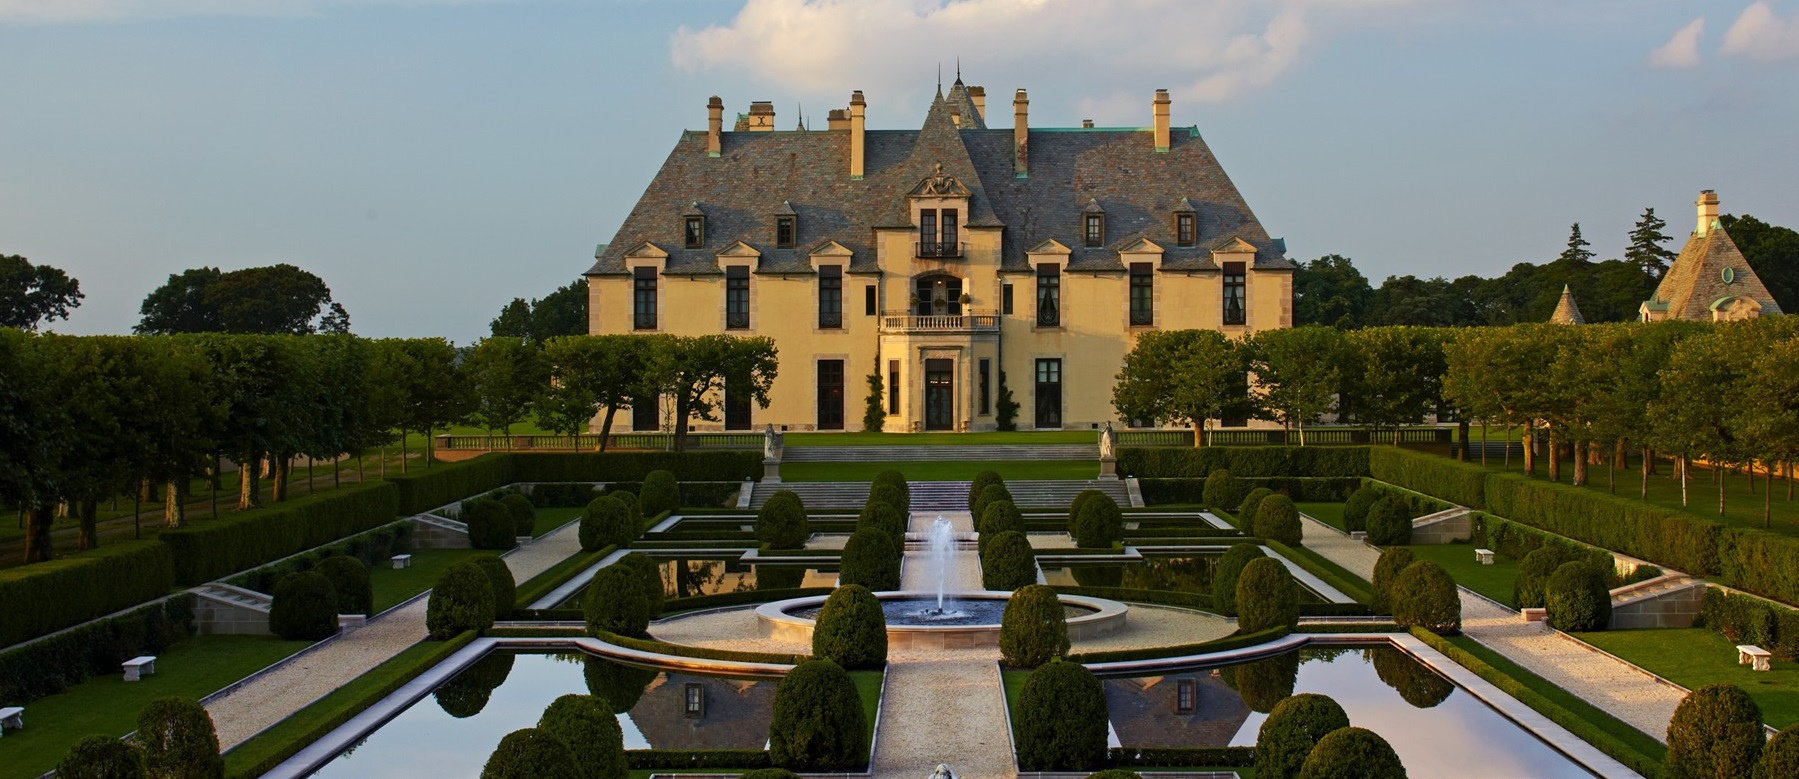 For Example An Inexpensive Midwest Wedding Venue Might Cost 5000 Plus 50 Per Guest While A At The Gorgeous Oheka Castle In Long Island